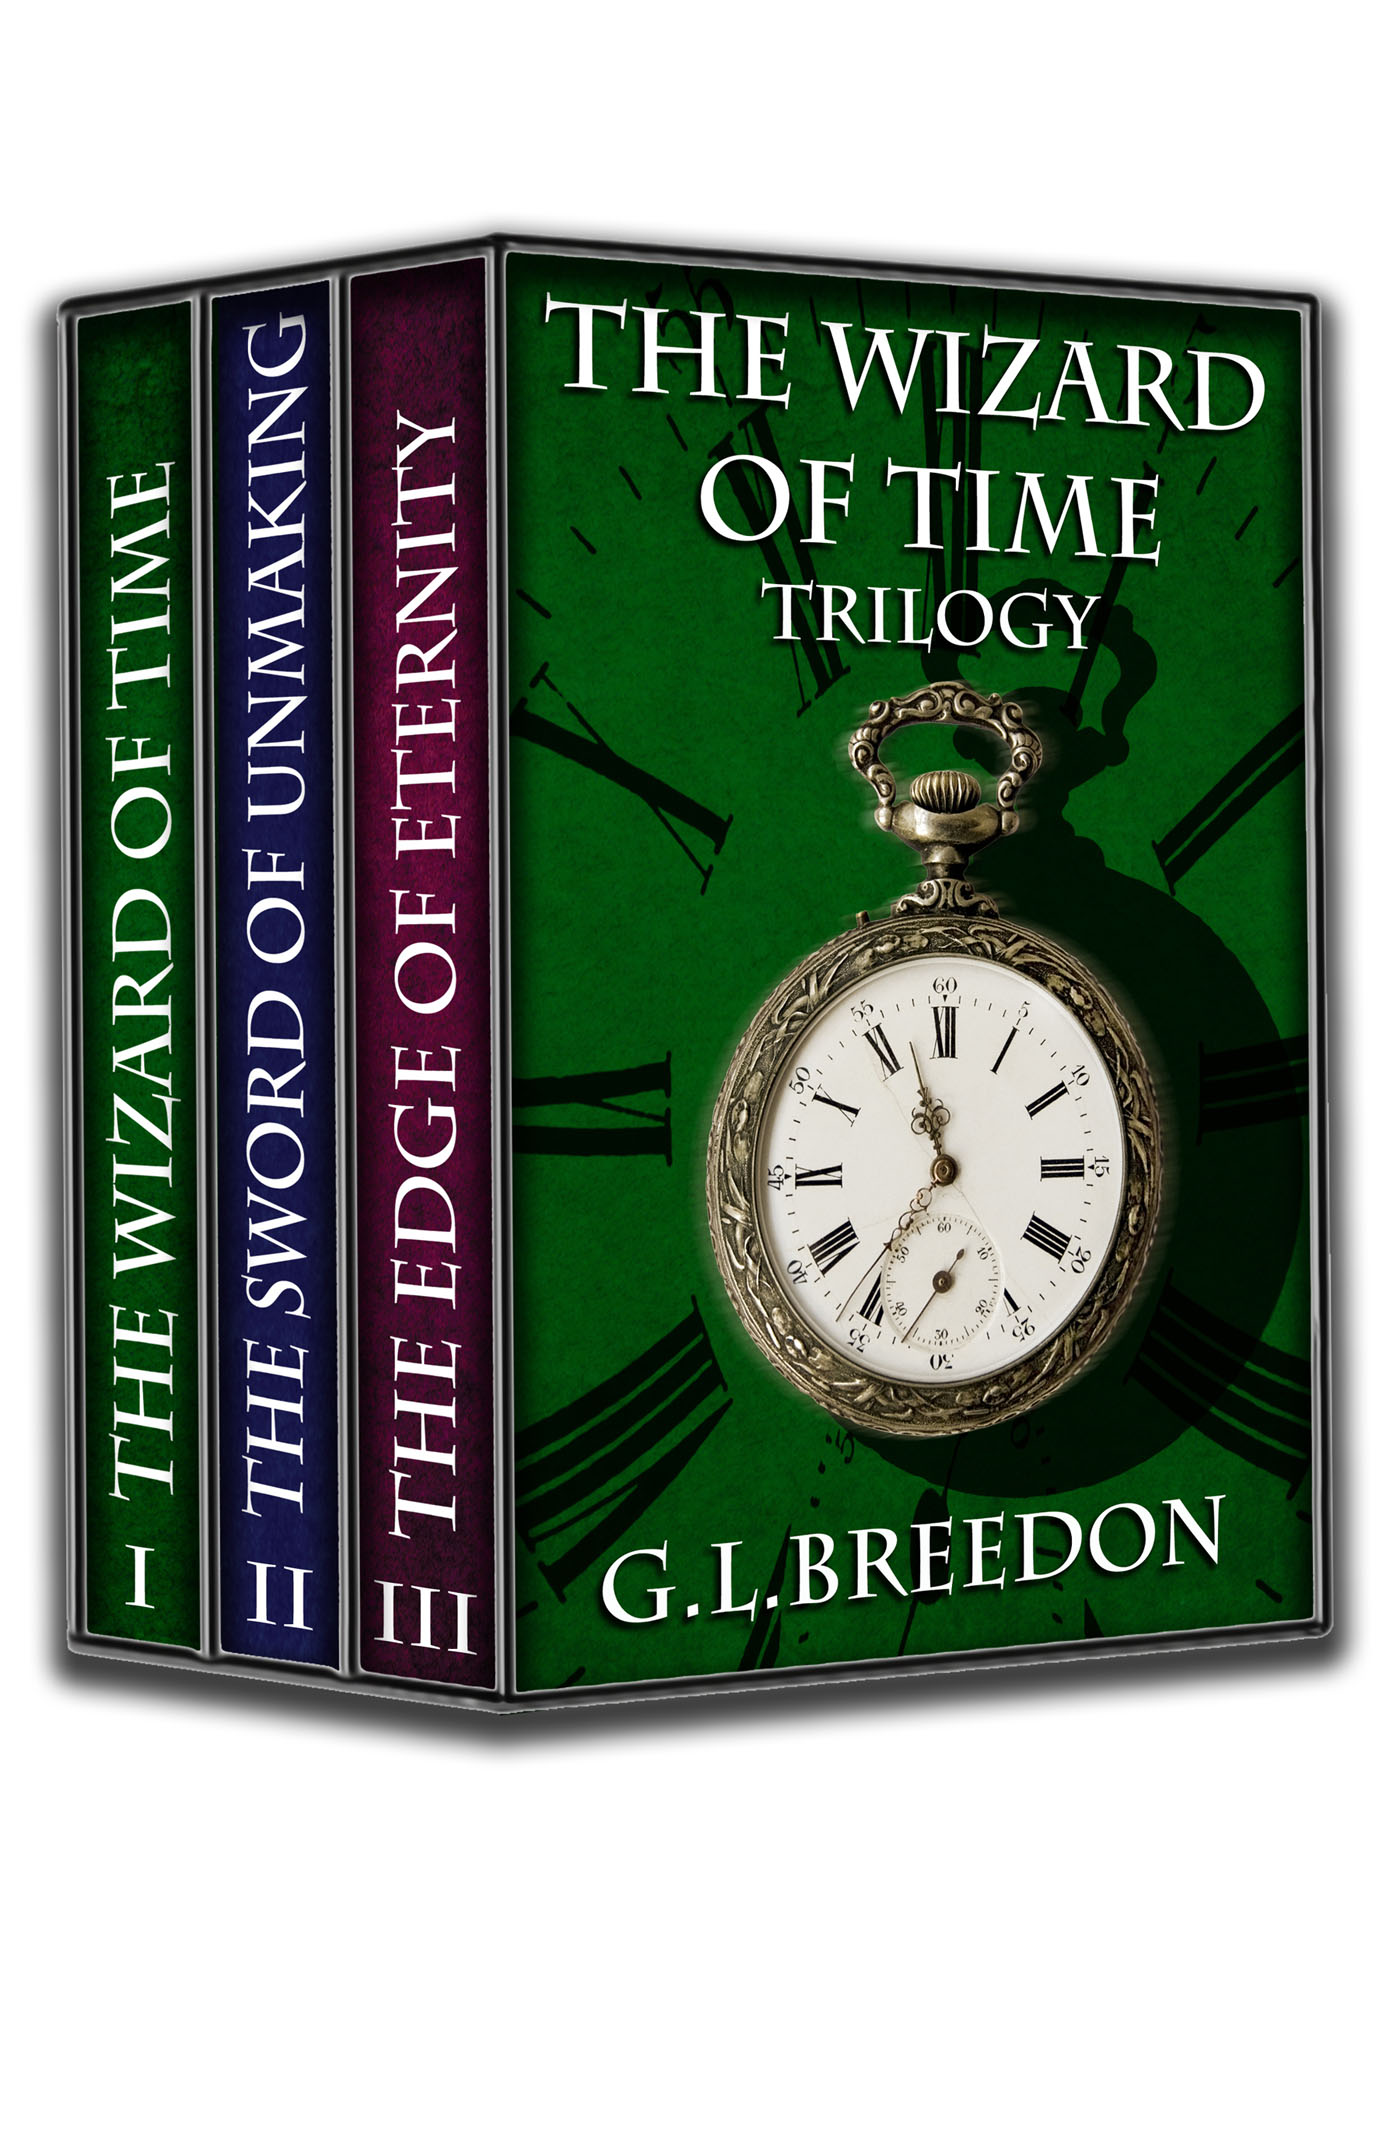 Wizard hd manual ebook array the wizard of time trilogy in one ebook kosmosaic books g l breedon rh kosmosaicbooks fandeluxe Images